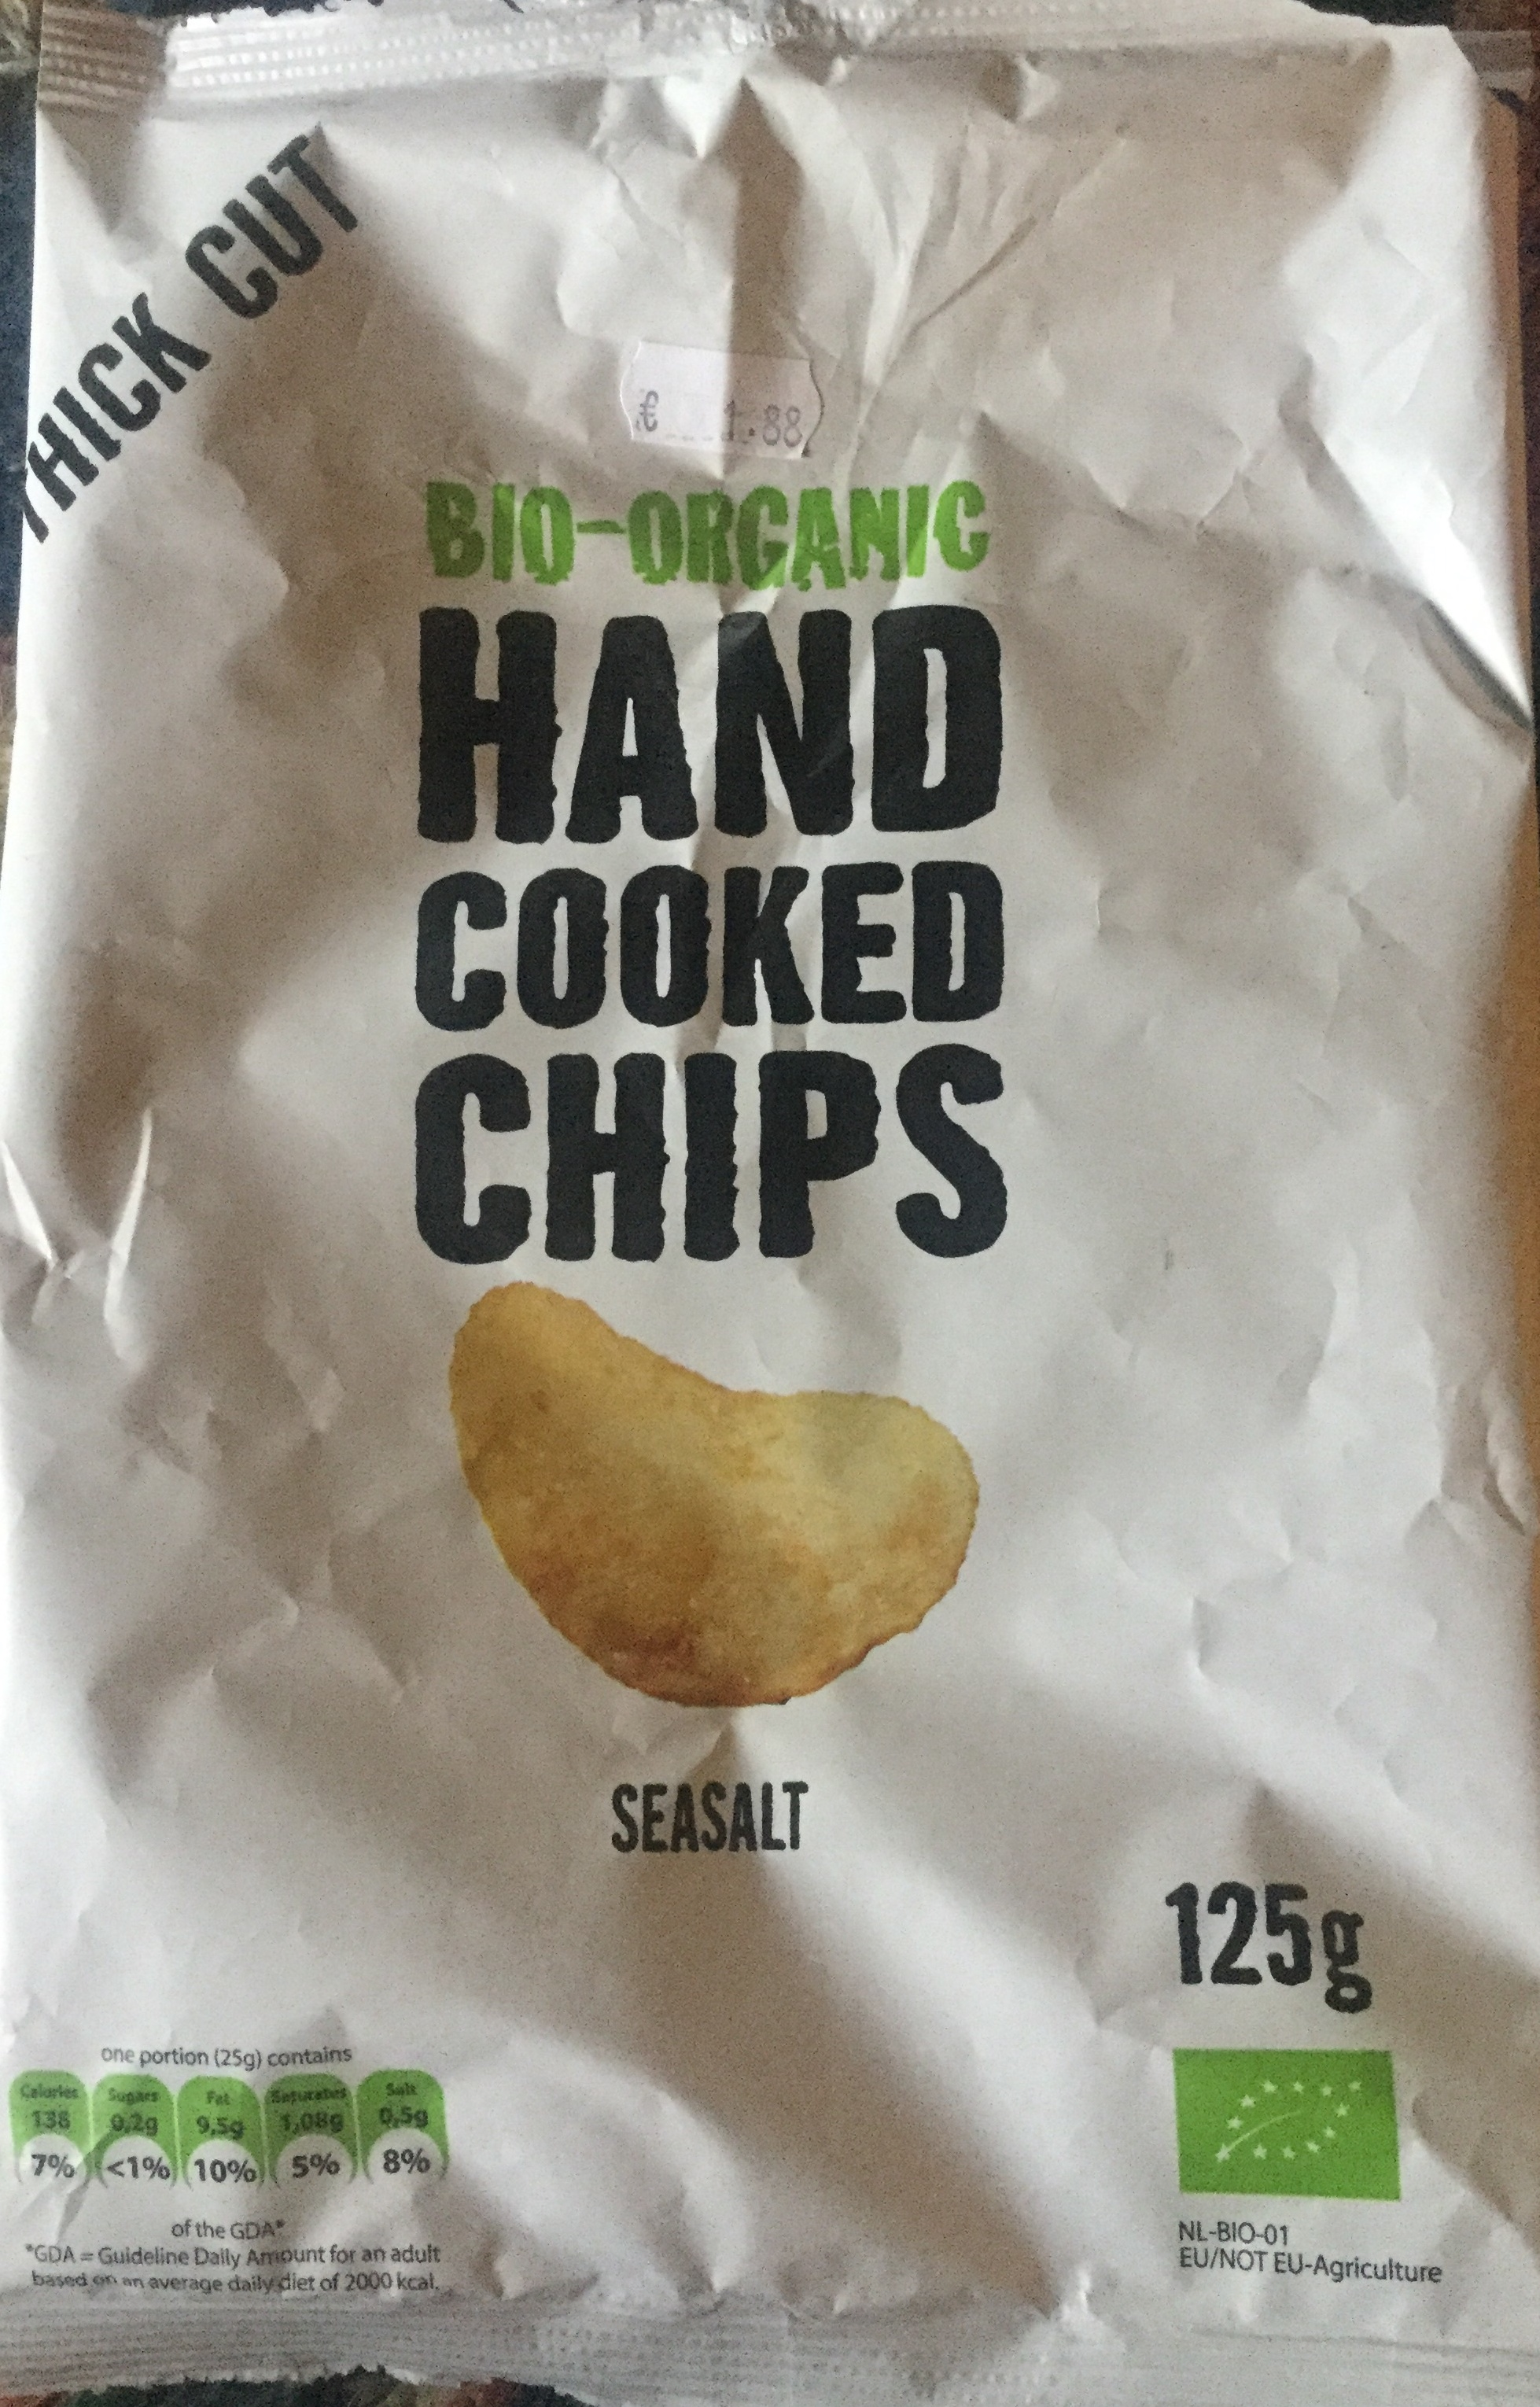 Bio-organic hand cooked chips - Product - en